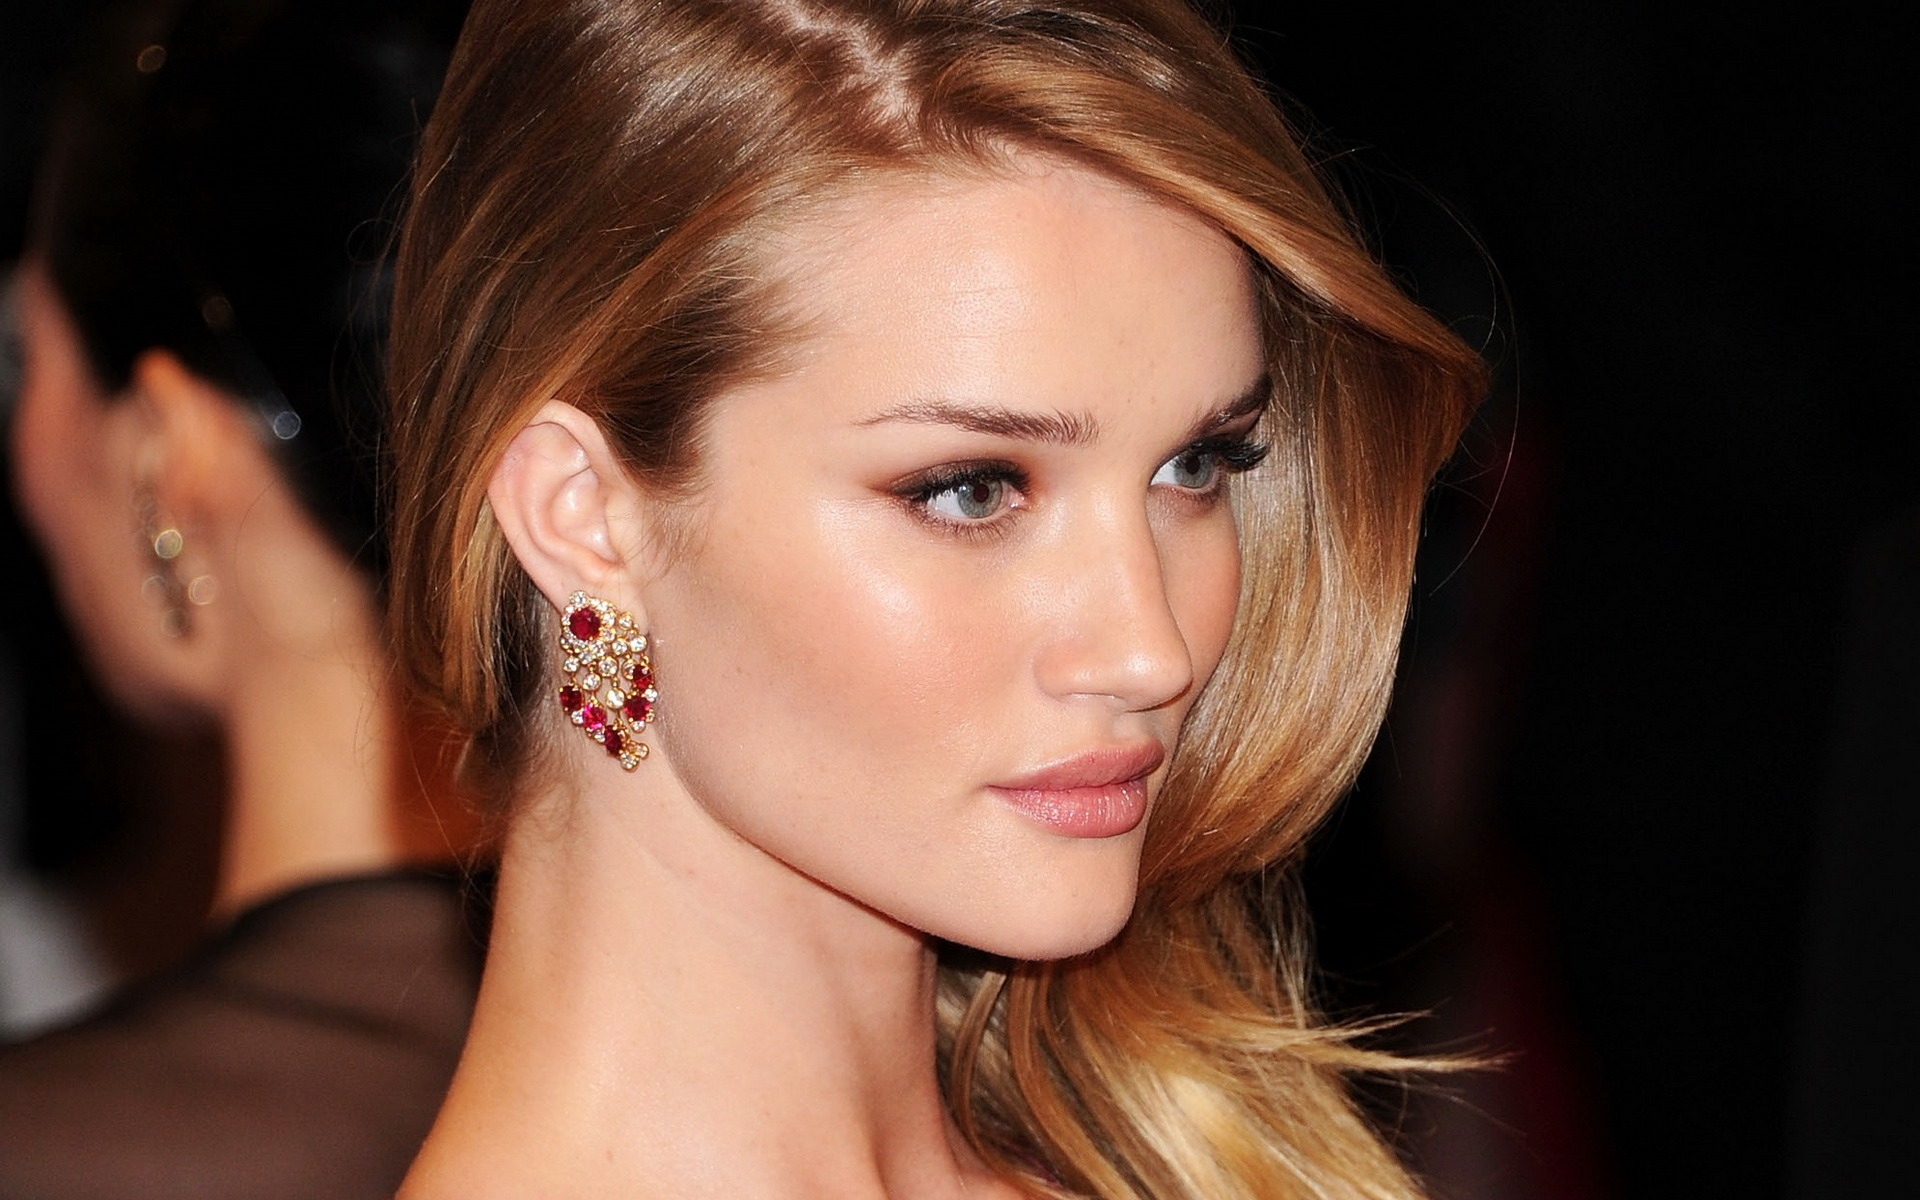 In a huge coup for locally owned beauty brand ModelCo, international model and all round babe Rosie Huntington-Whiteley has been tapped as the first ...